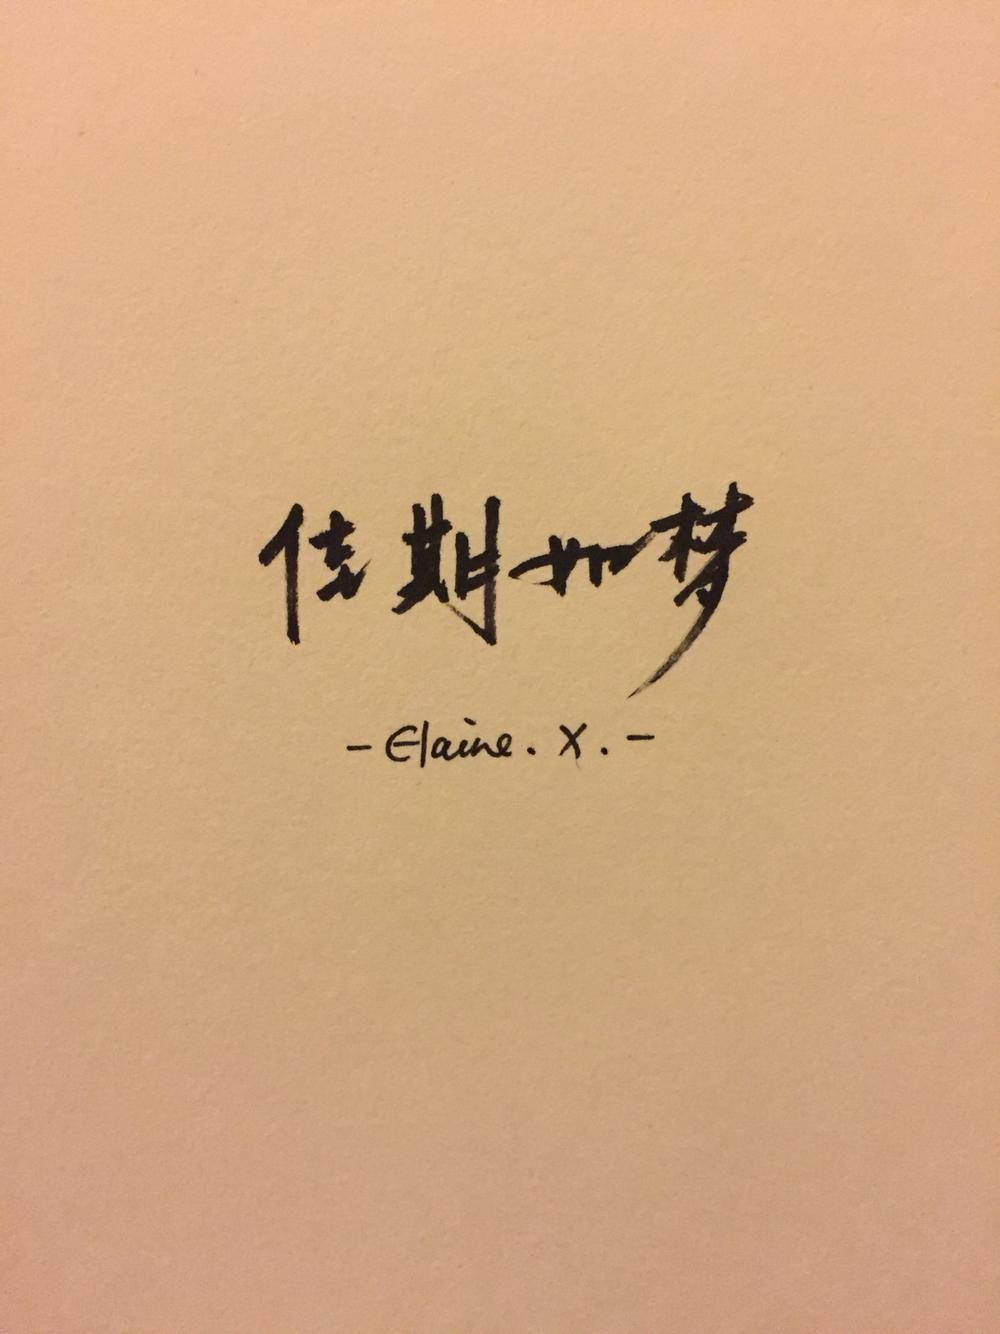 1000x1334 Chinese Writing Wallpaper | (67++ Wallpapers)